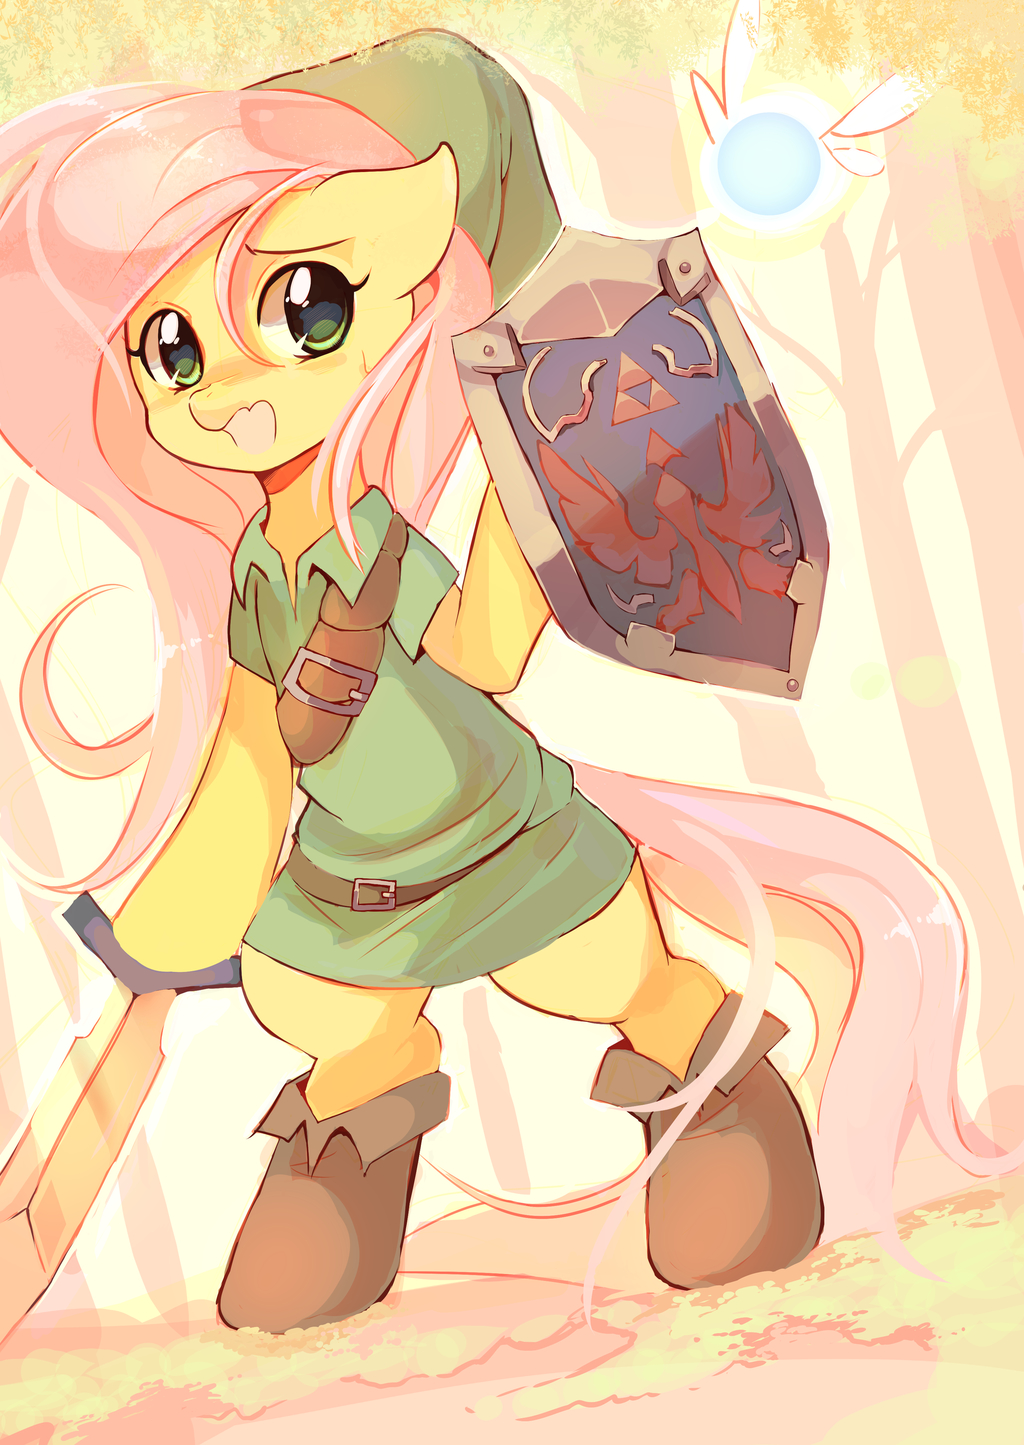 Most recent image: Fluttershy - Hero of Time